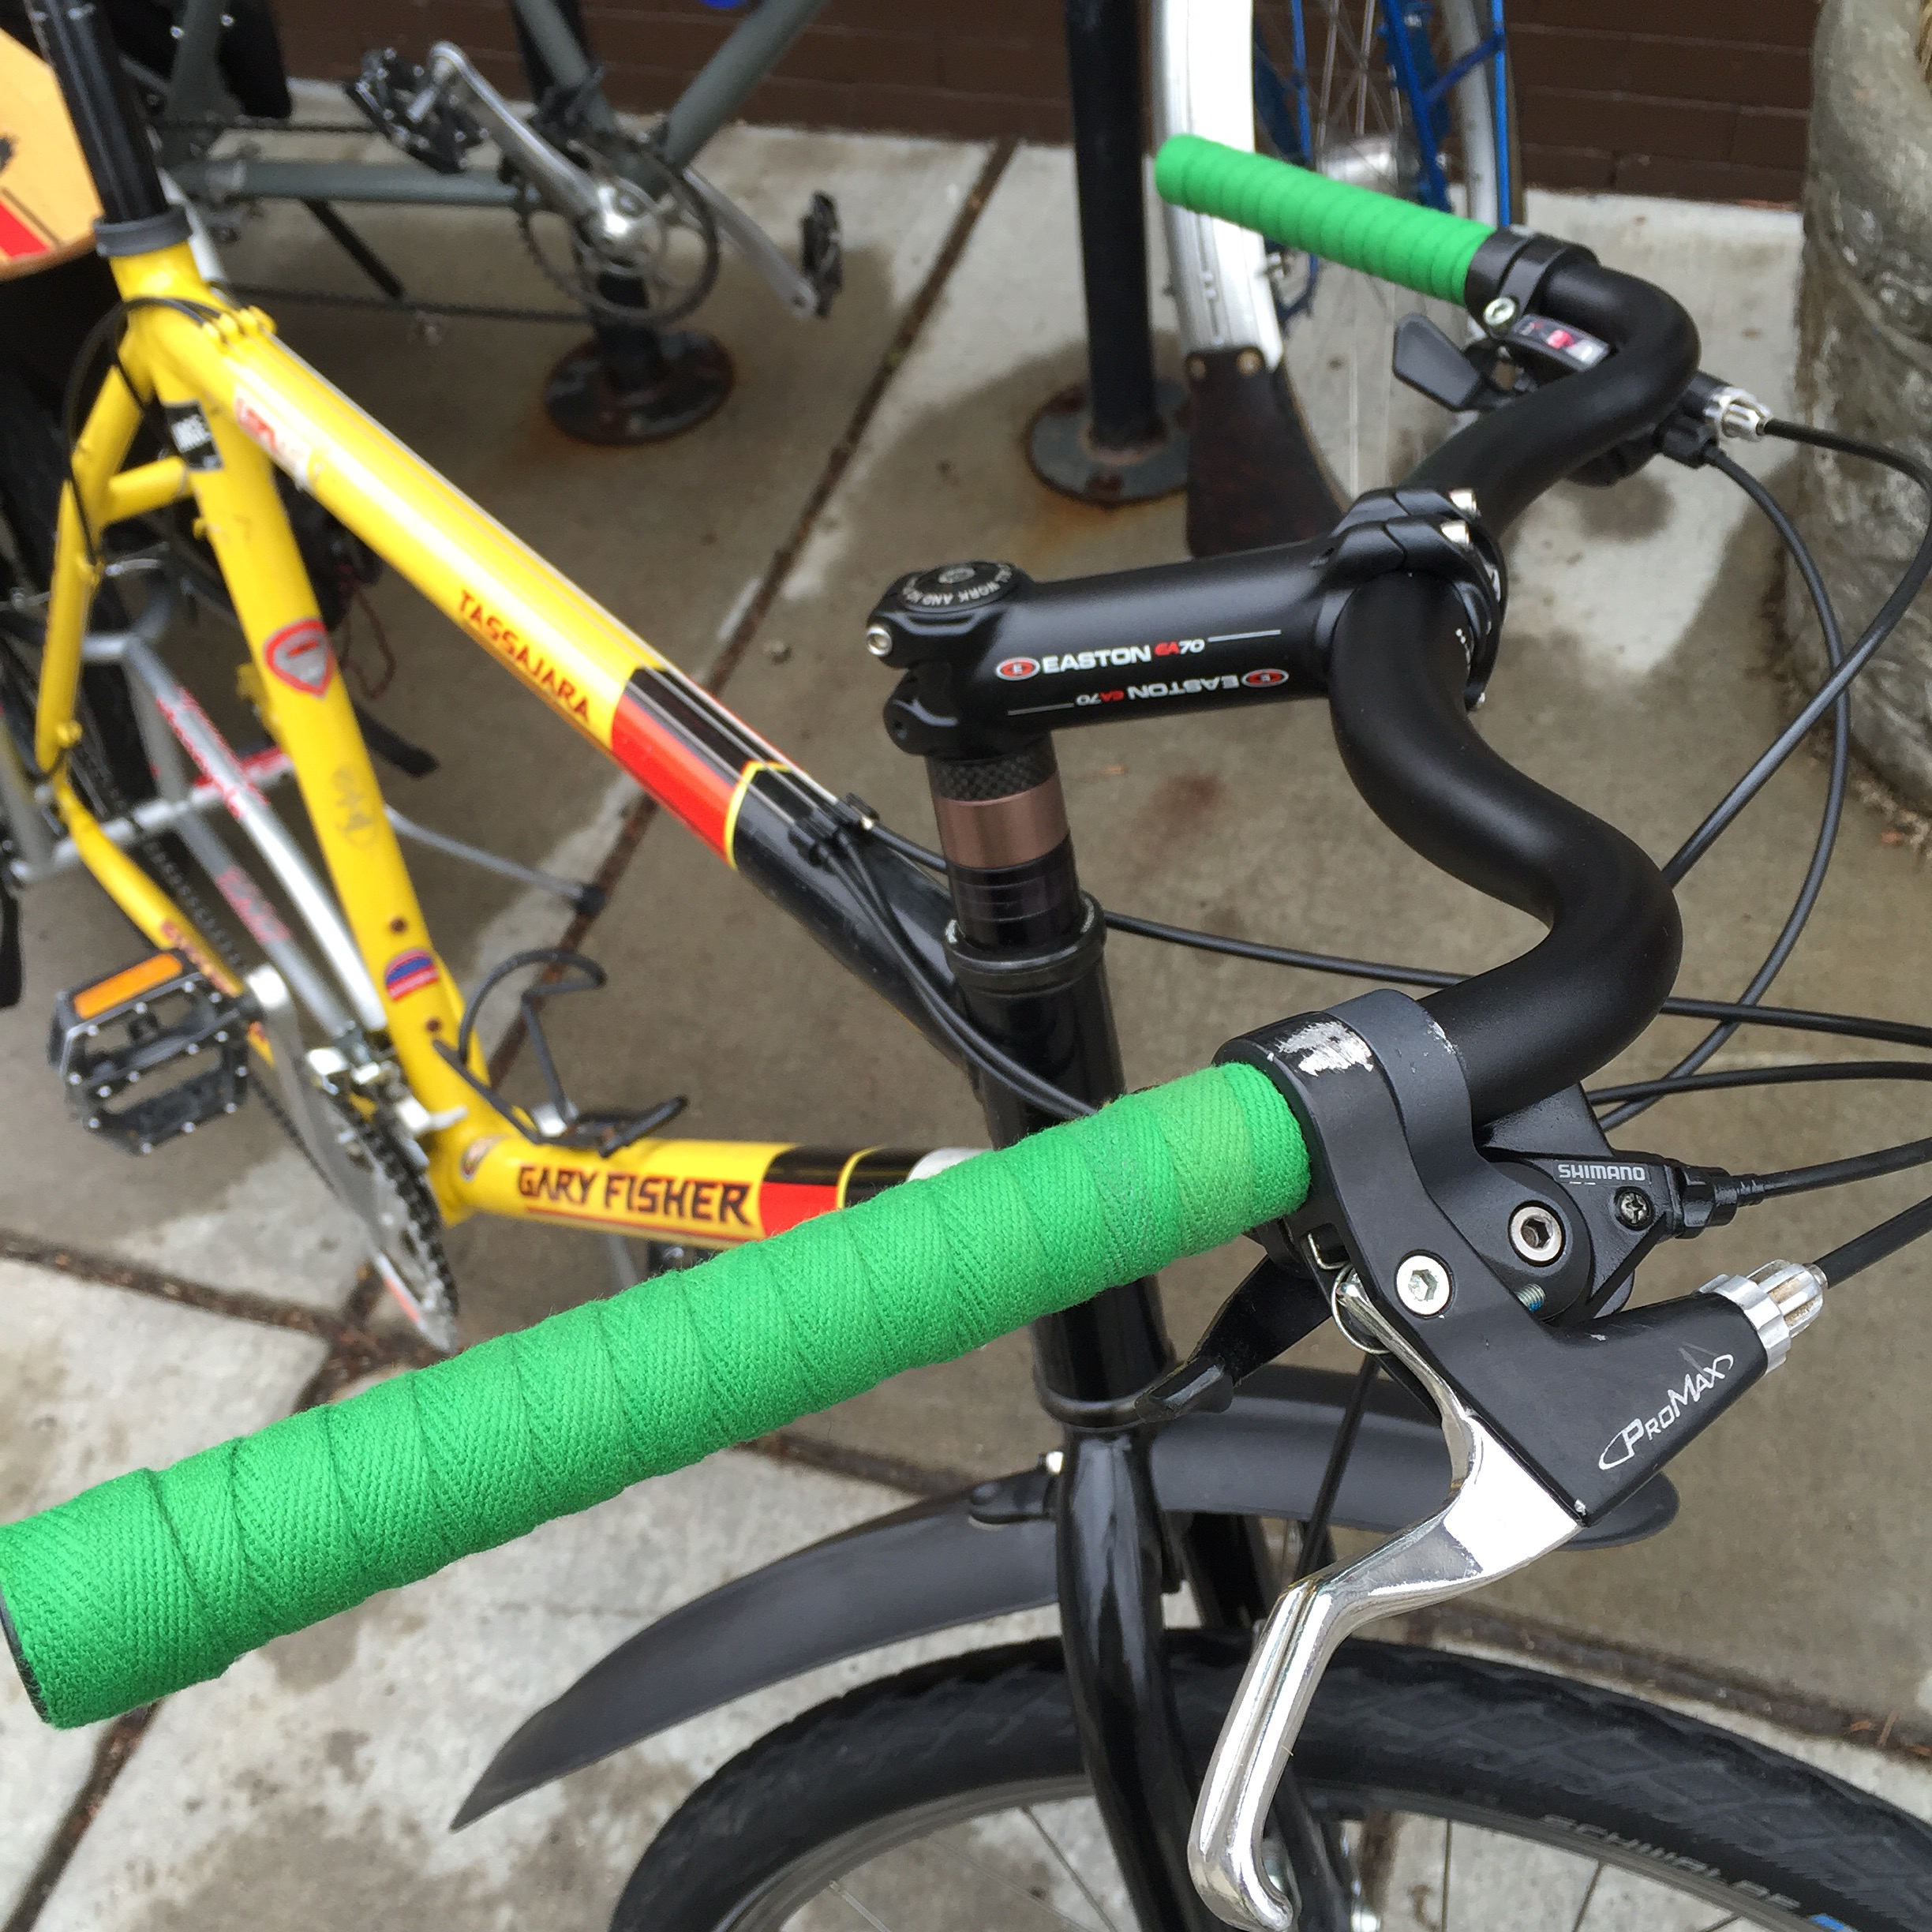 Jeff Jones' handlebars, new stem, and Newbaum's Grass Green cotton bar tape.